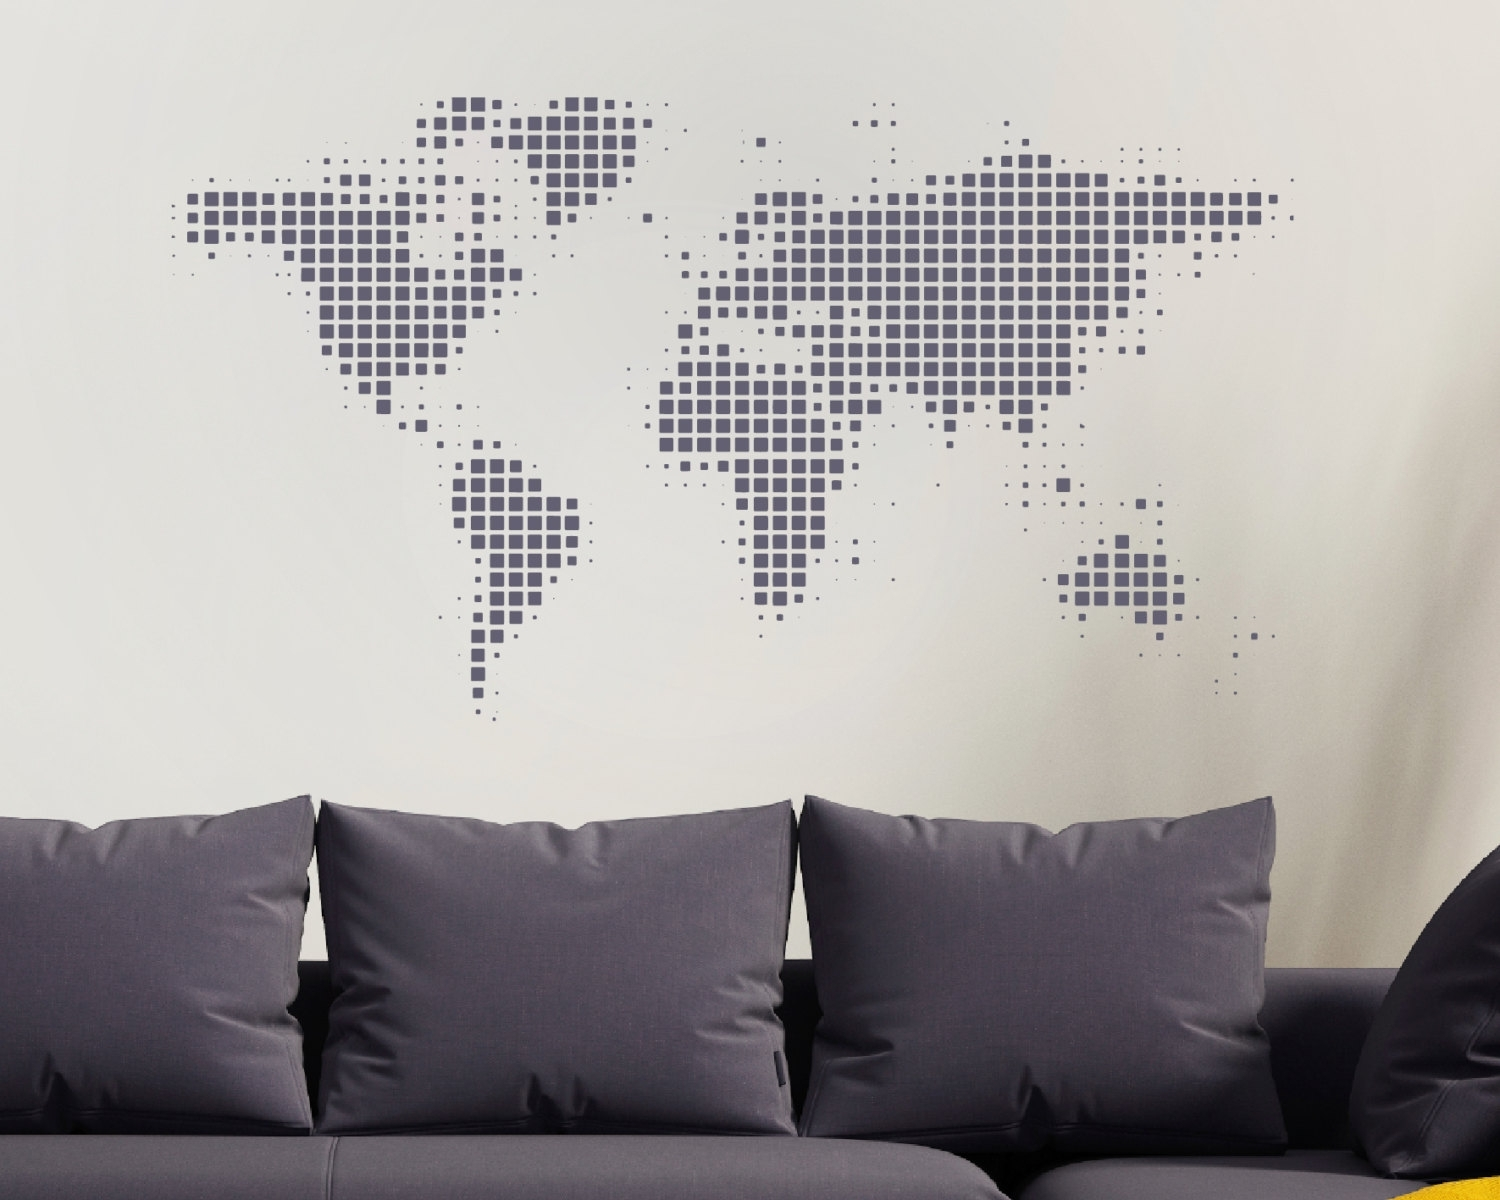 World Map Vinyl Wall Sticker Stickers And For   Furlongs With Regard To Vinyl Wall Art World Map (Photo 18 of 20)